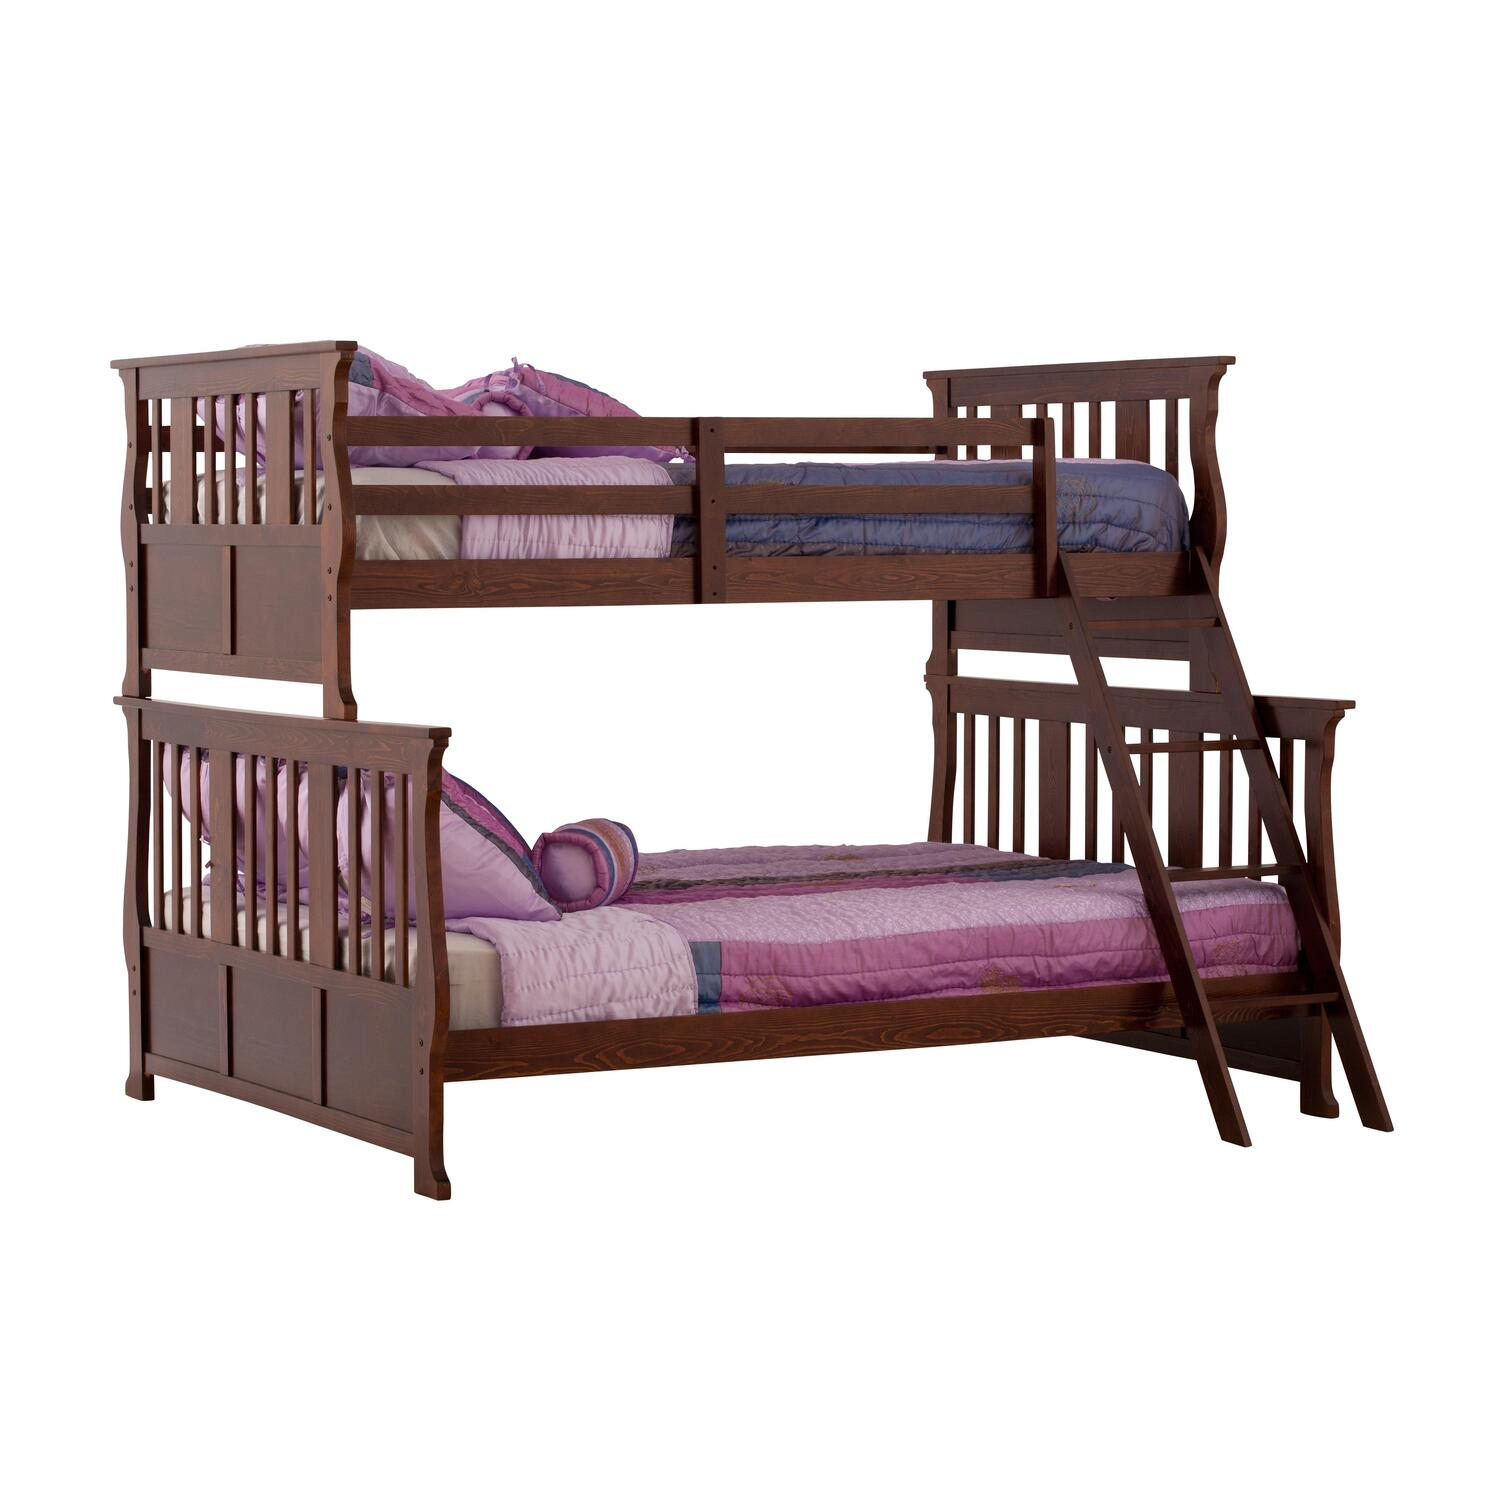 Double Twin Bunk Bed 4323 x 2882